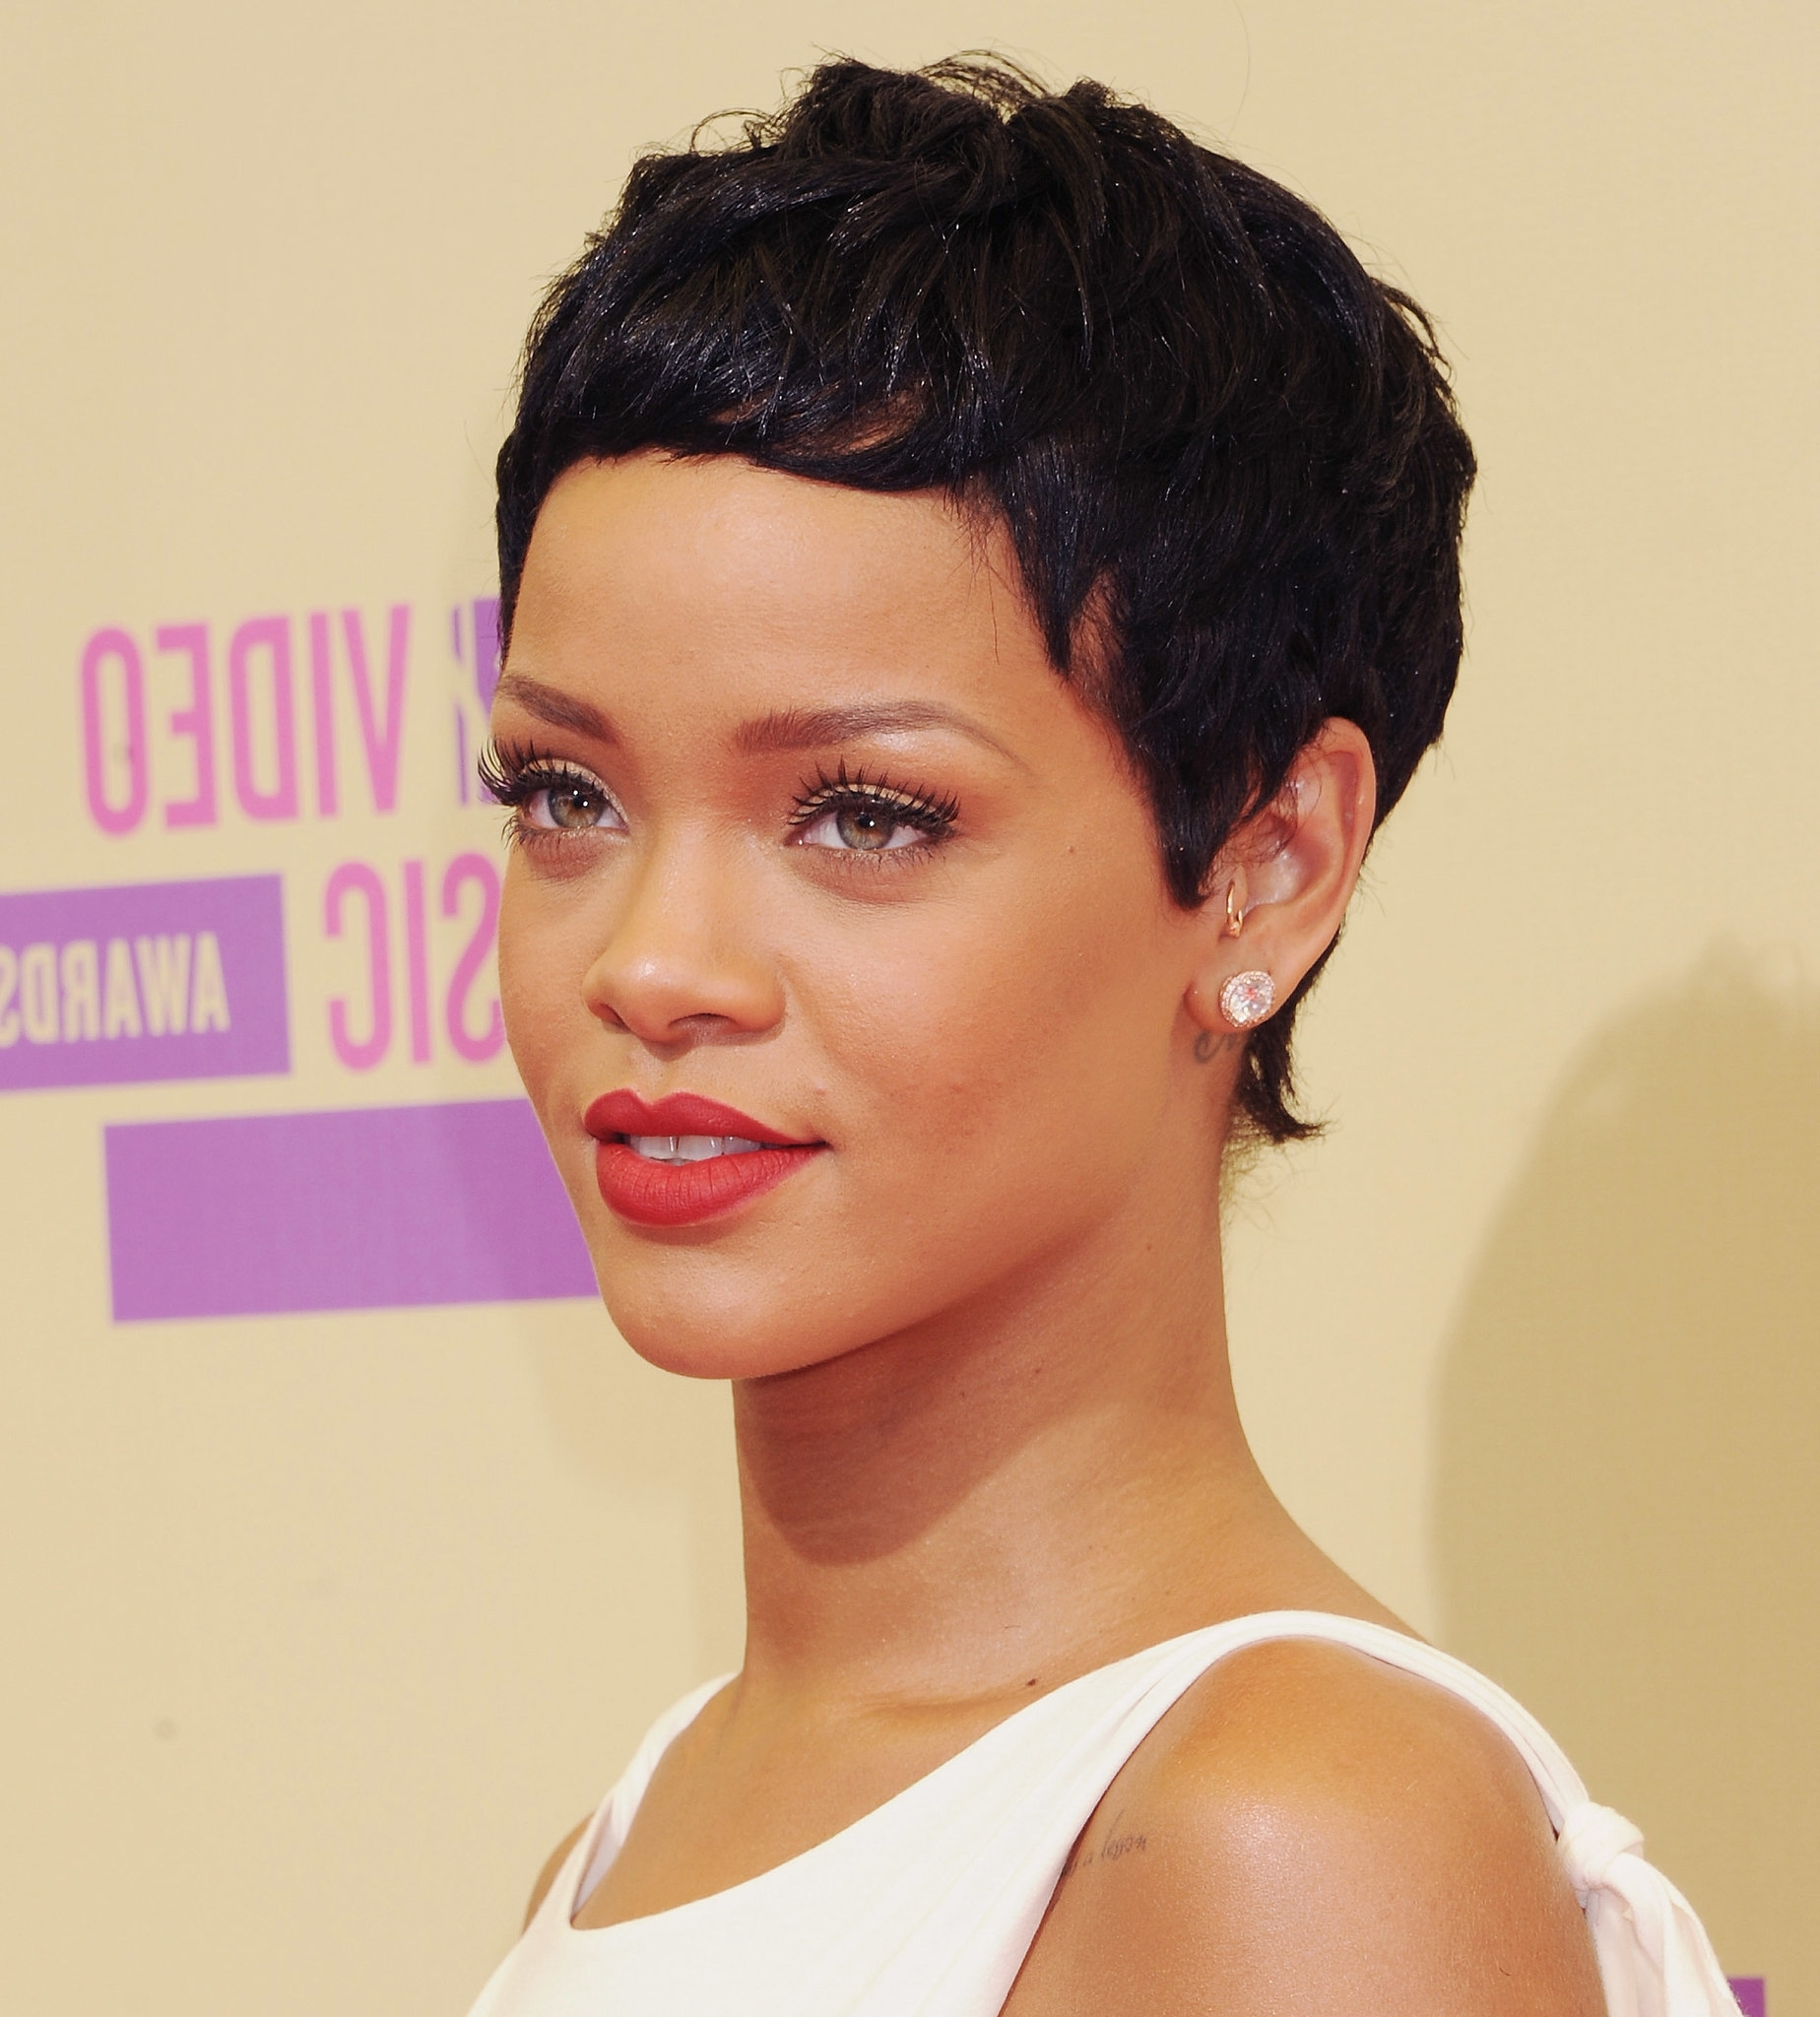 Short Haircut Trends From Celebrities For Black Women – Page 2 Within Recent Posh Pixie Hairstyles (View 15 of 15)